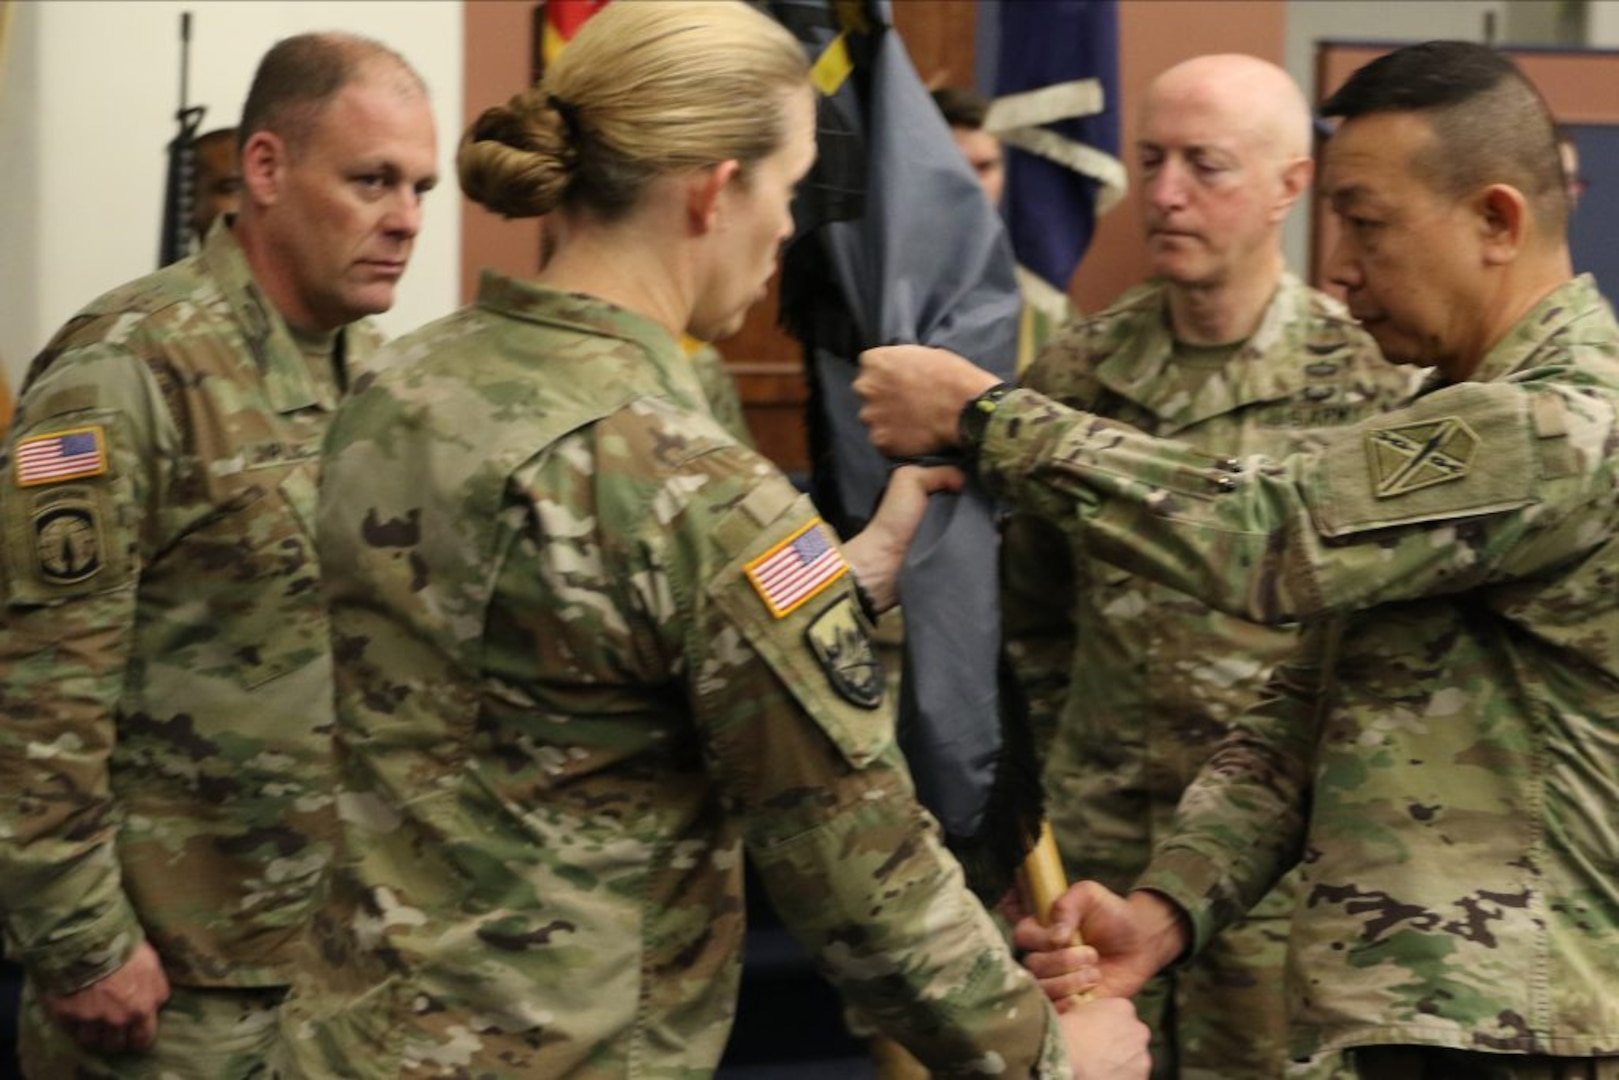 Ceremony officially welcomes new 91st Cyber Brigade commander